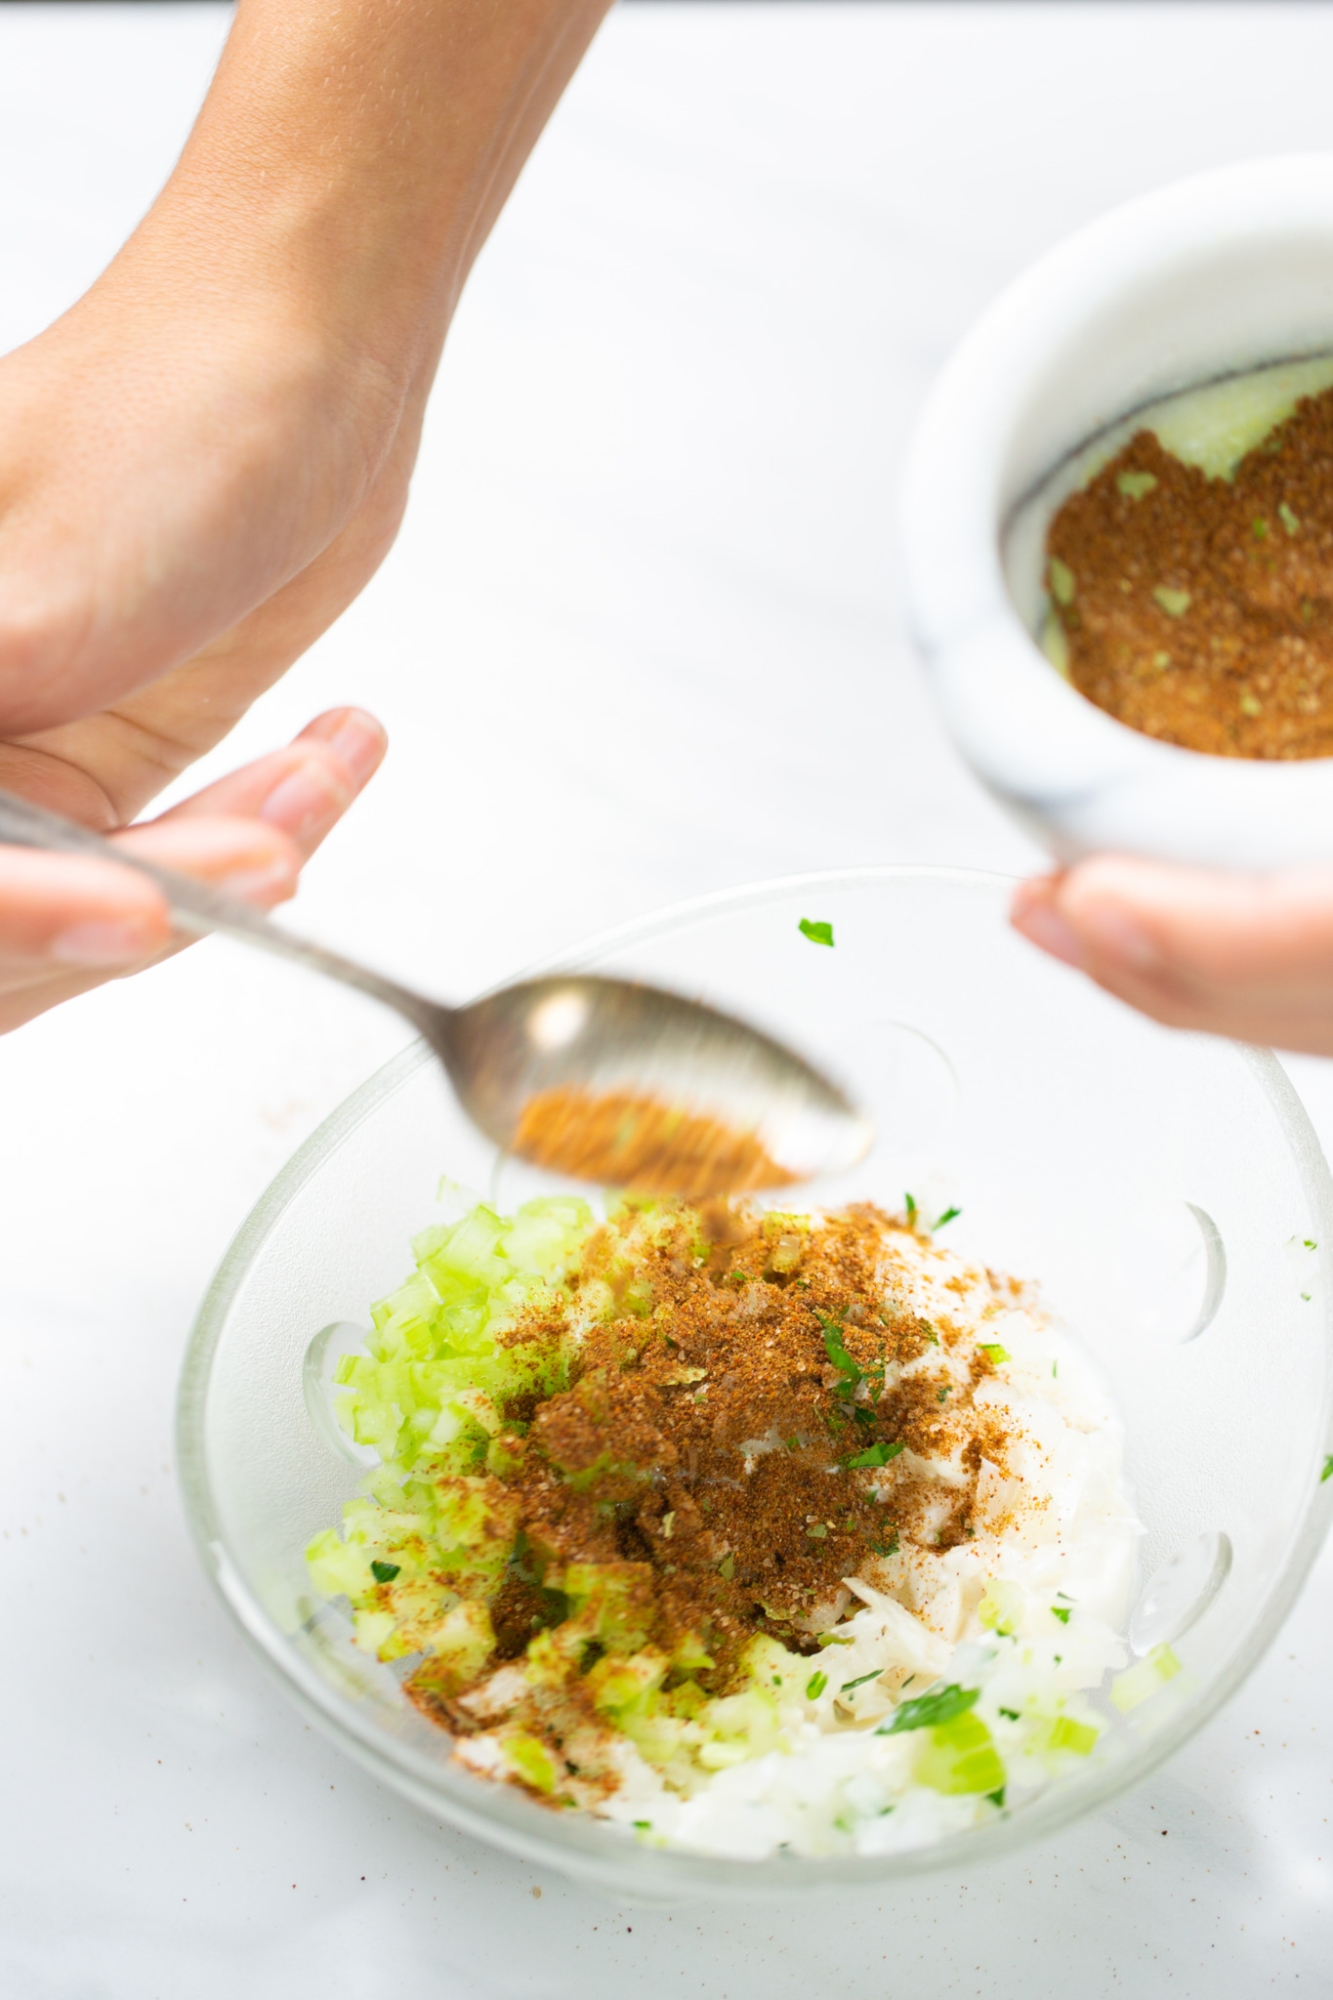 making special spices mayo with  celery, onion and spices